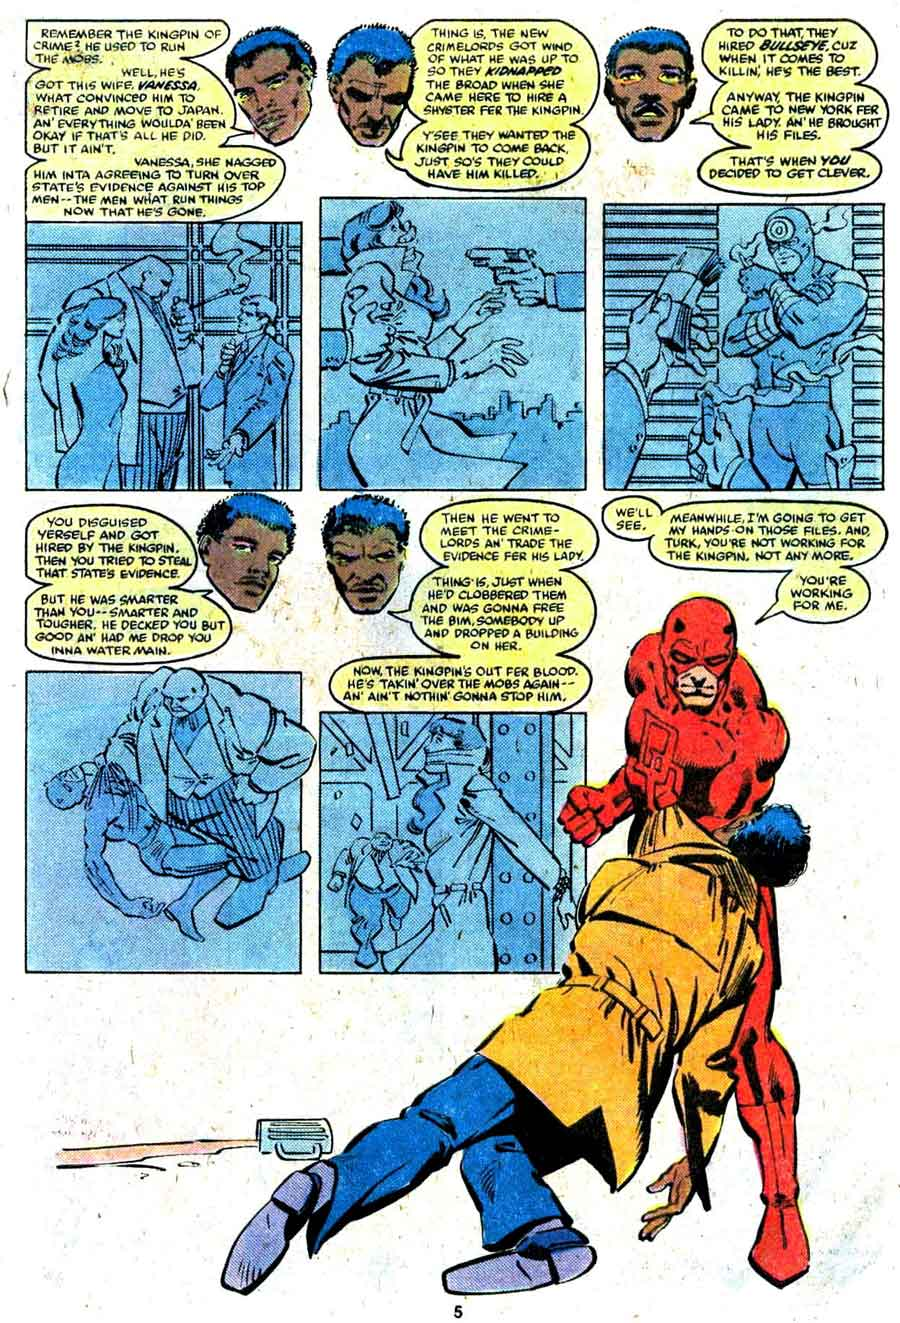 Daredevil v1 #172 marvel comic book page art by Frank Miller